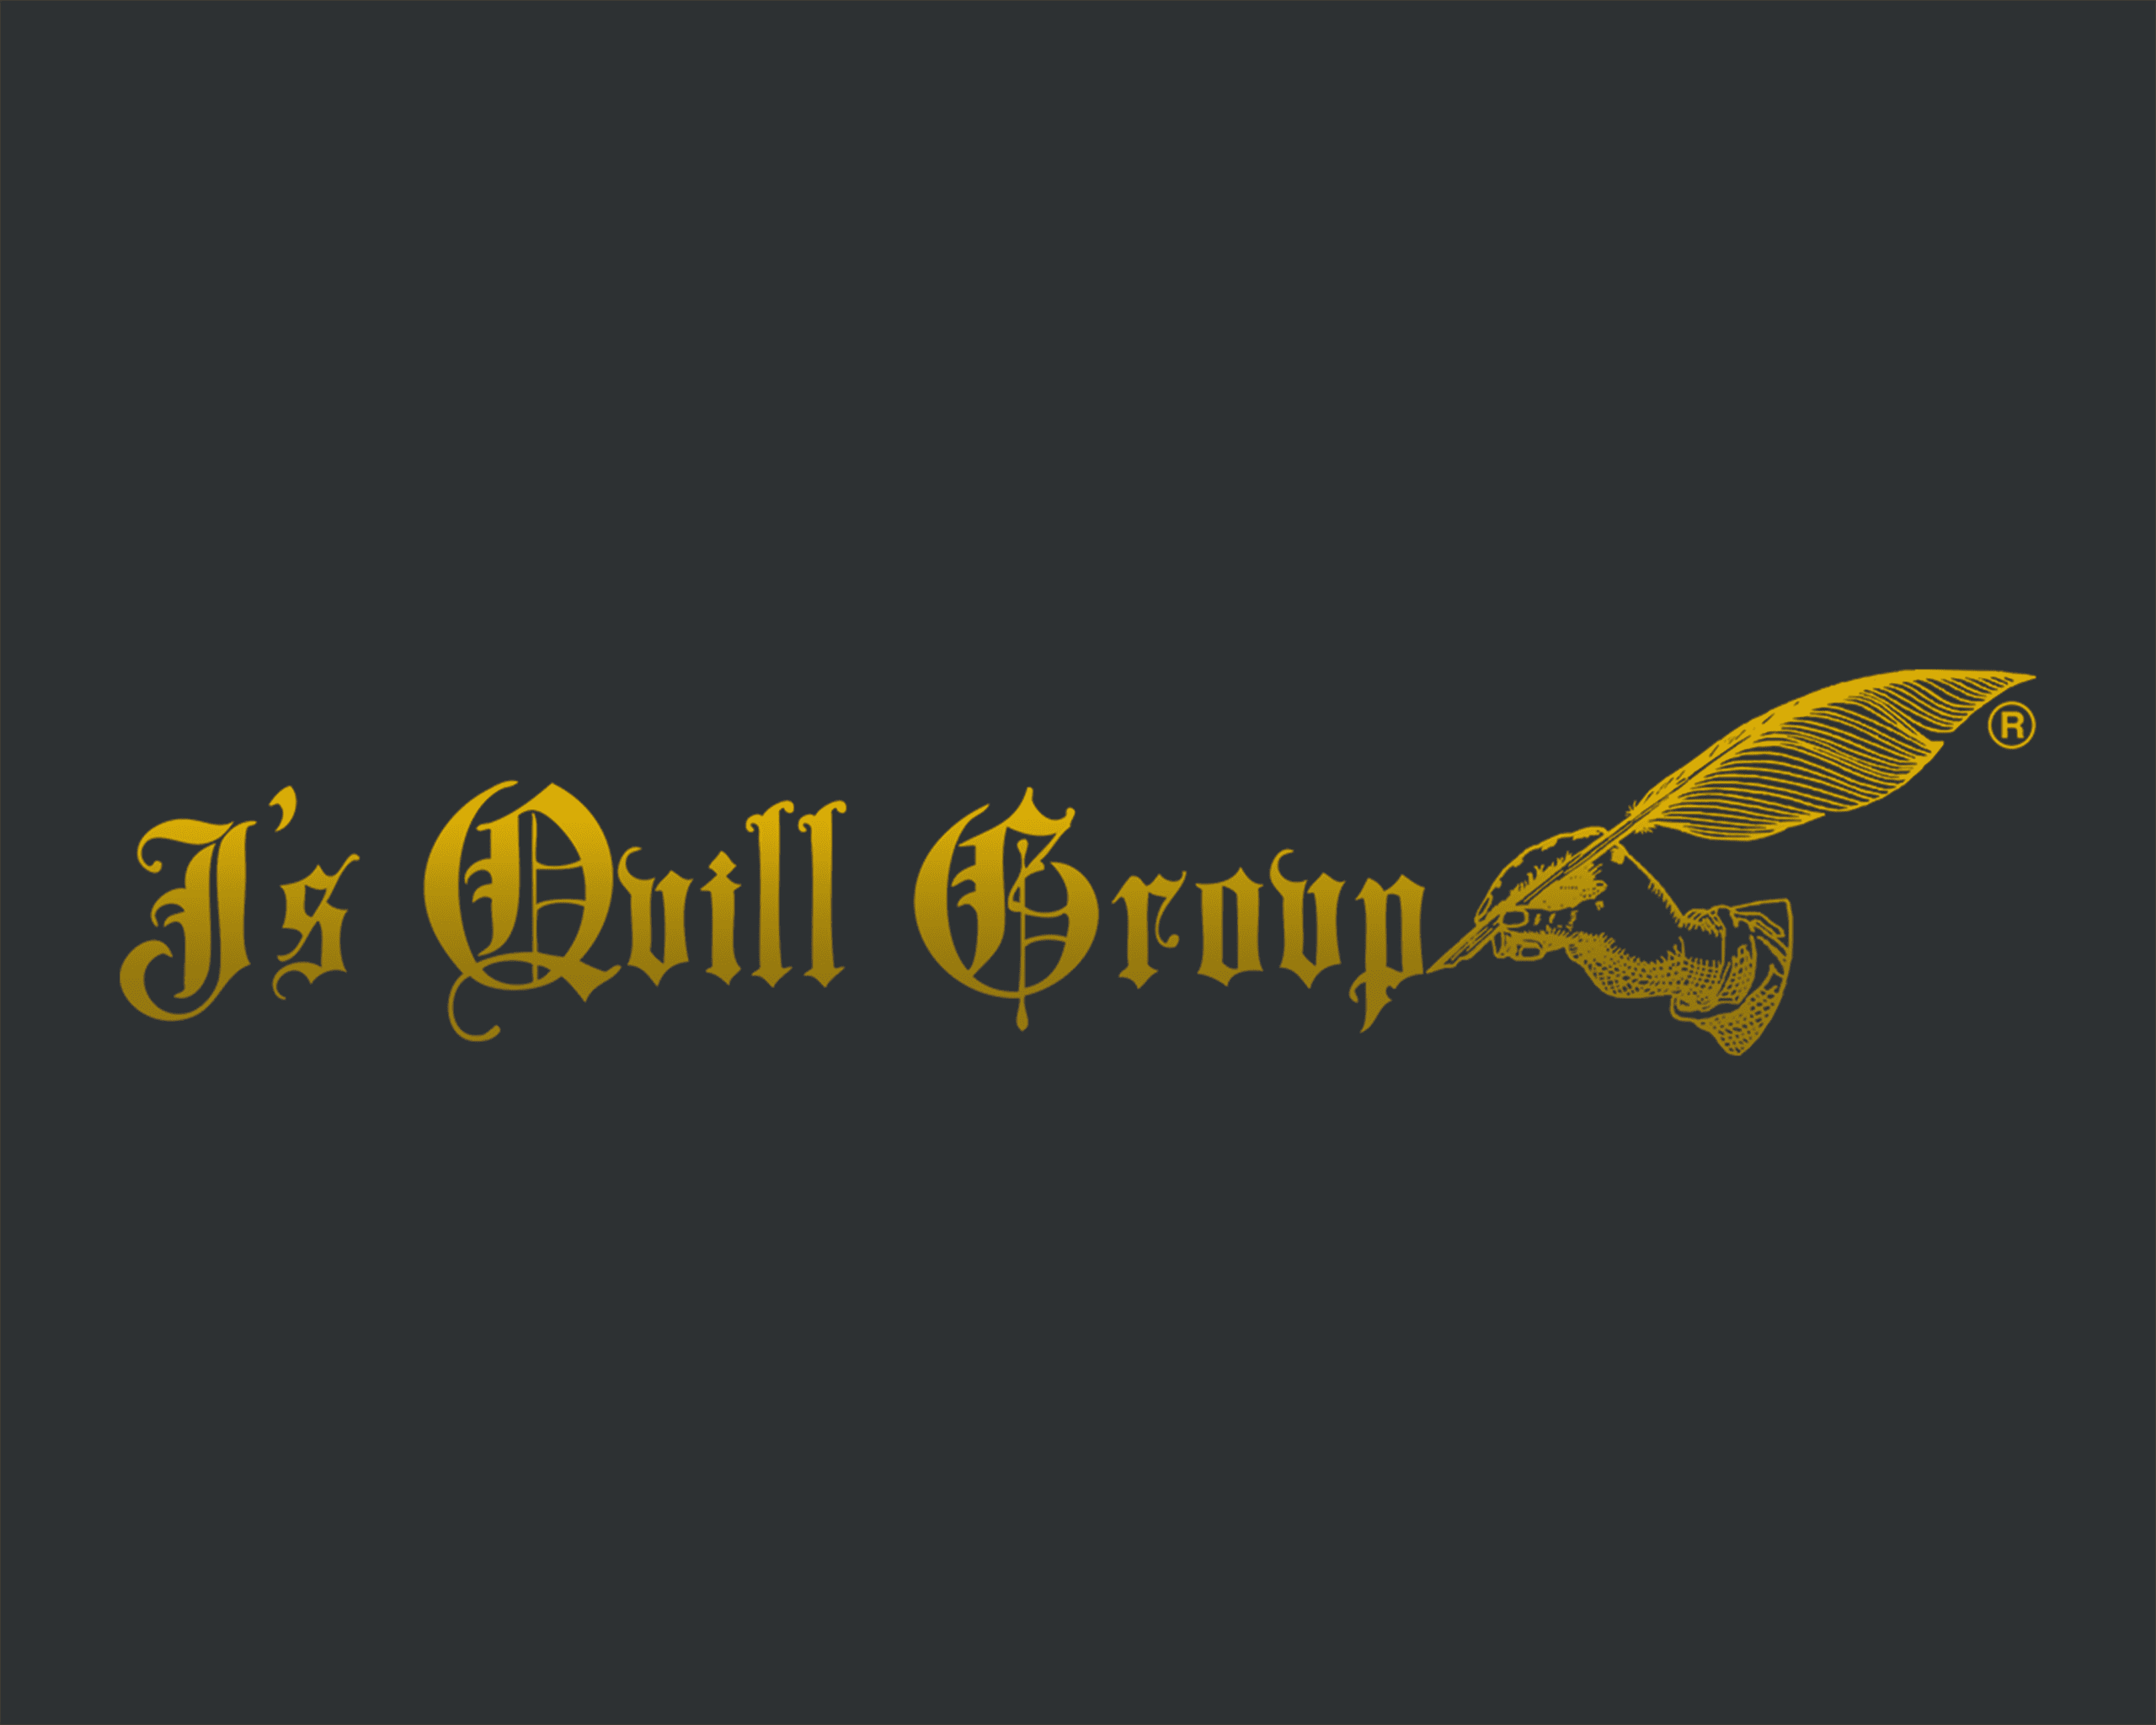 J's Quill Group Logo